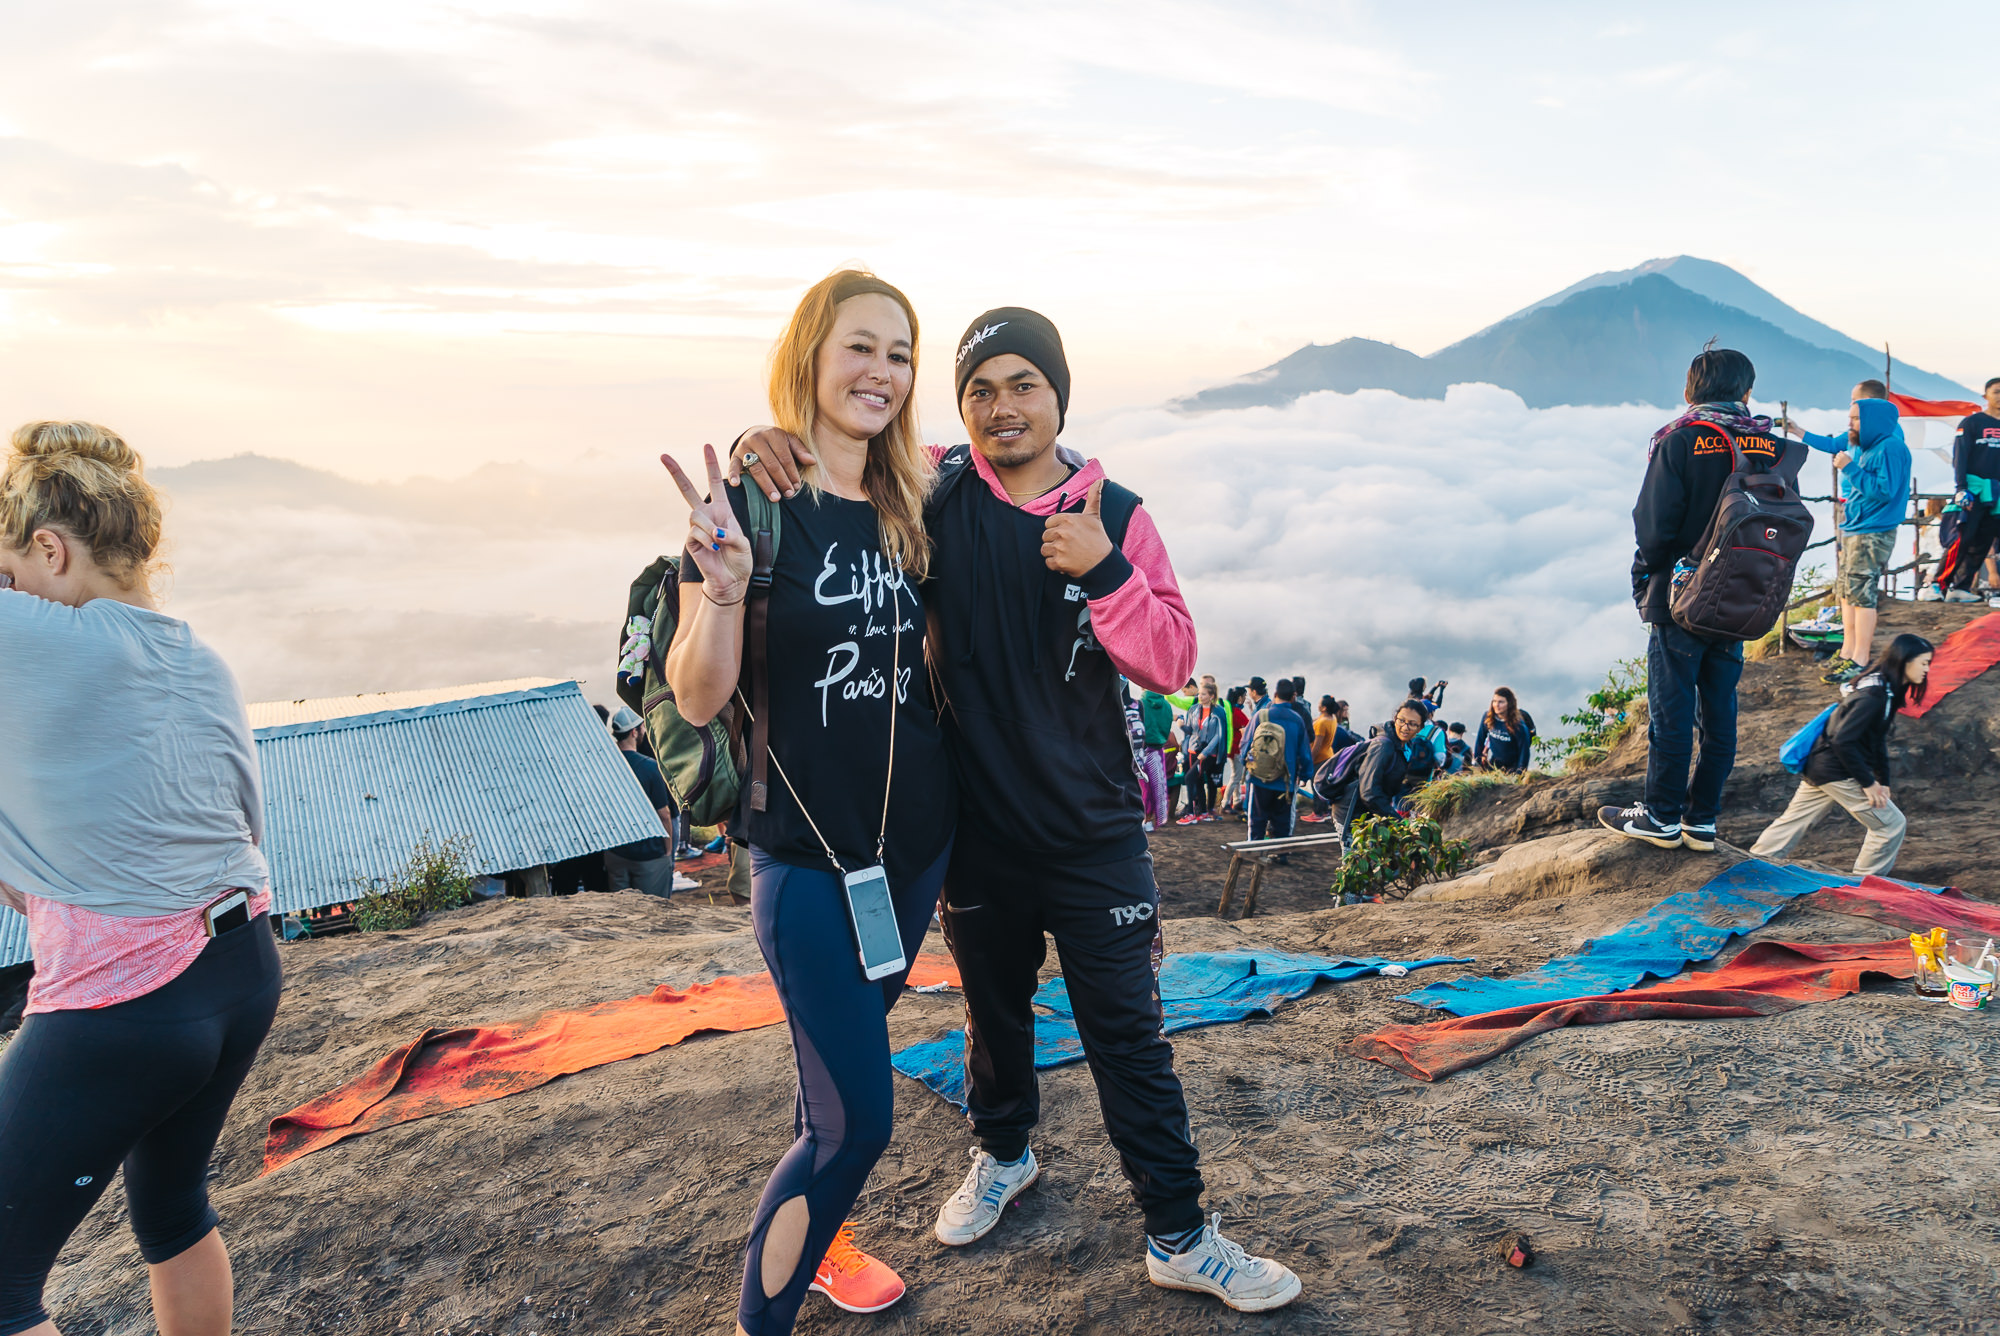 Climbing Mt Batur with the help from my friend, Nyoman